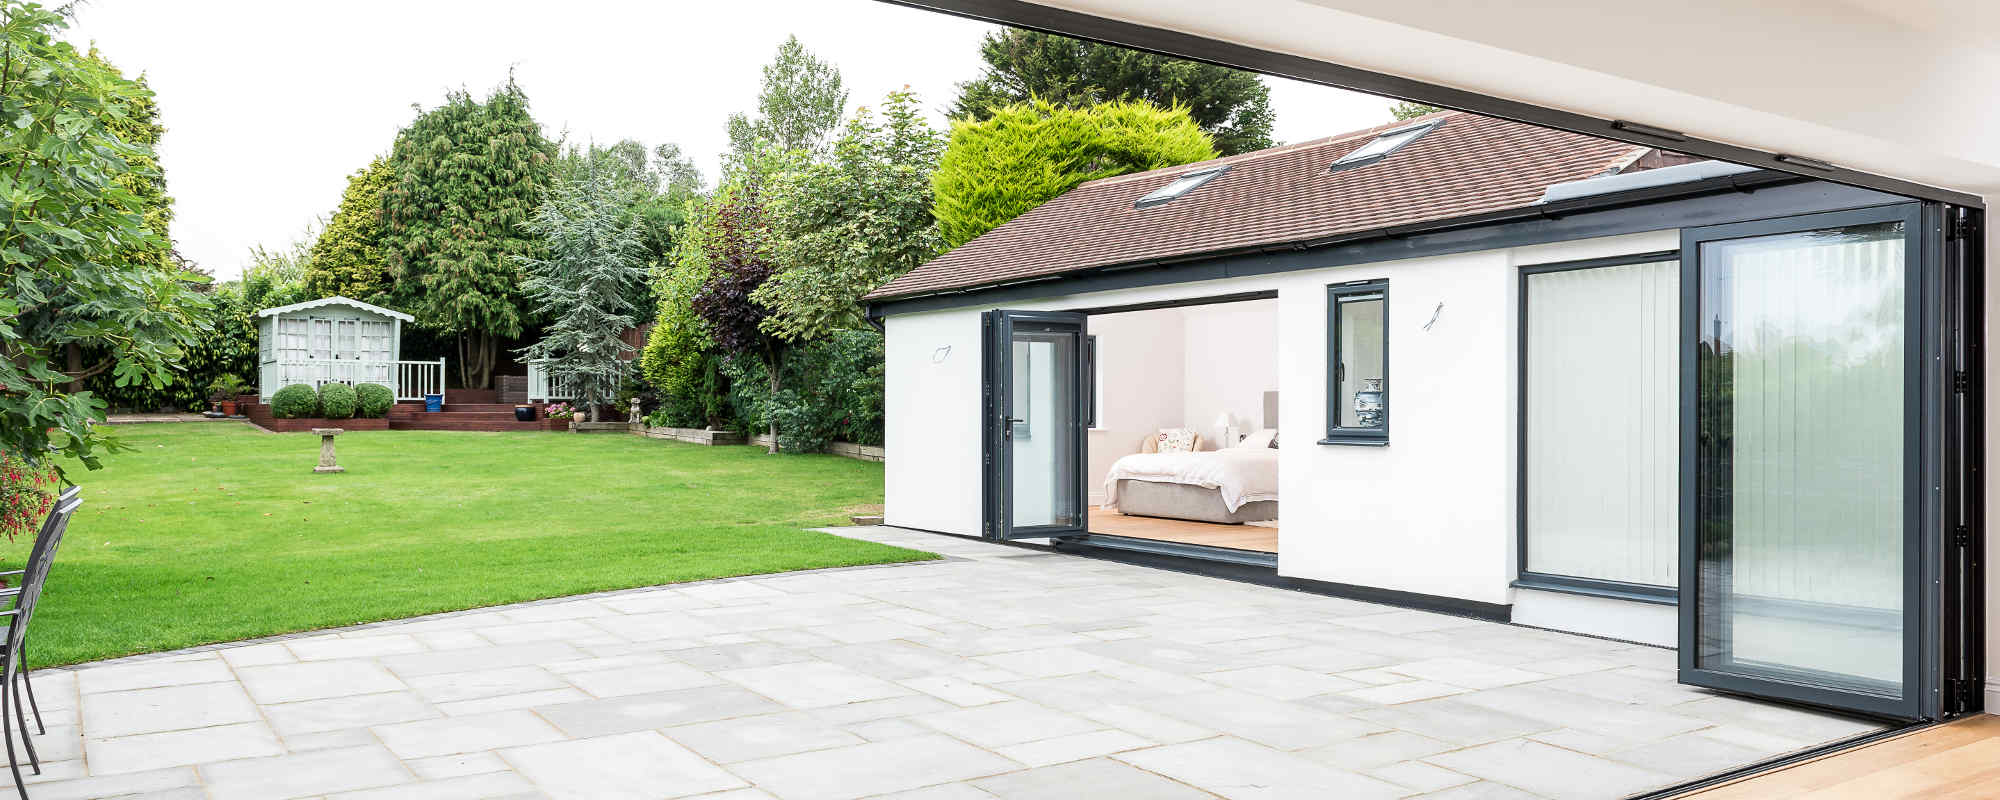 House Extension, Hove Park, Hove, East Sussex